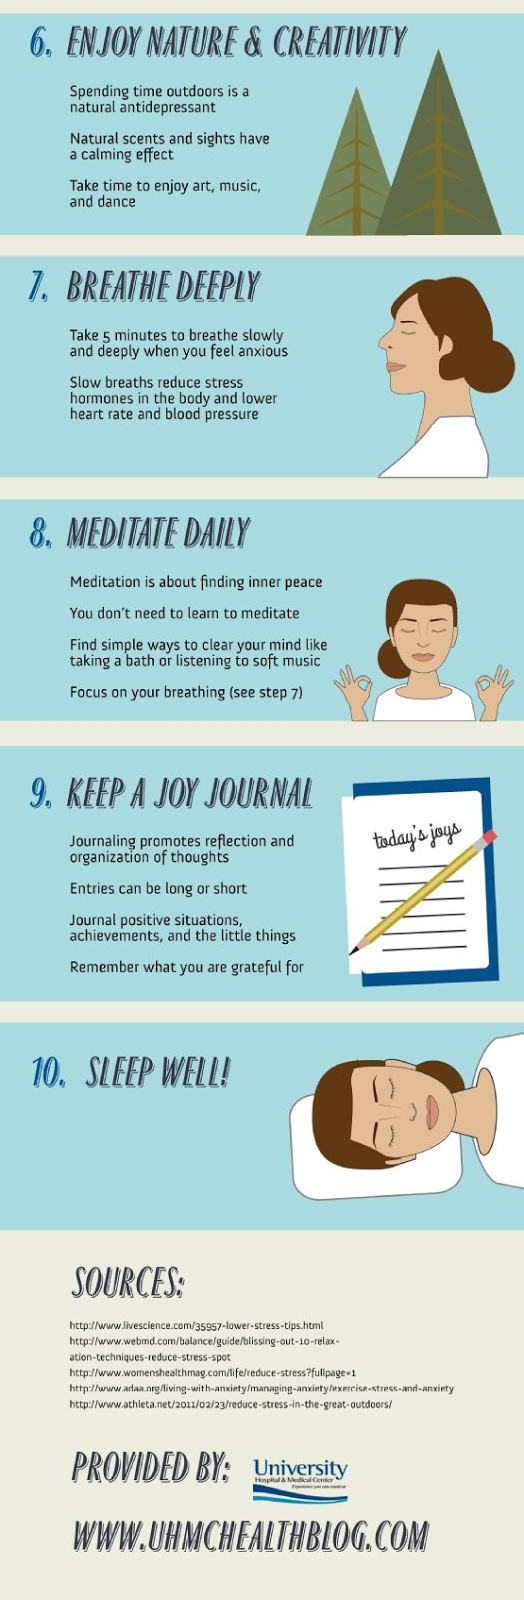 Ten Daily Steps for Less Stress